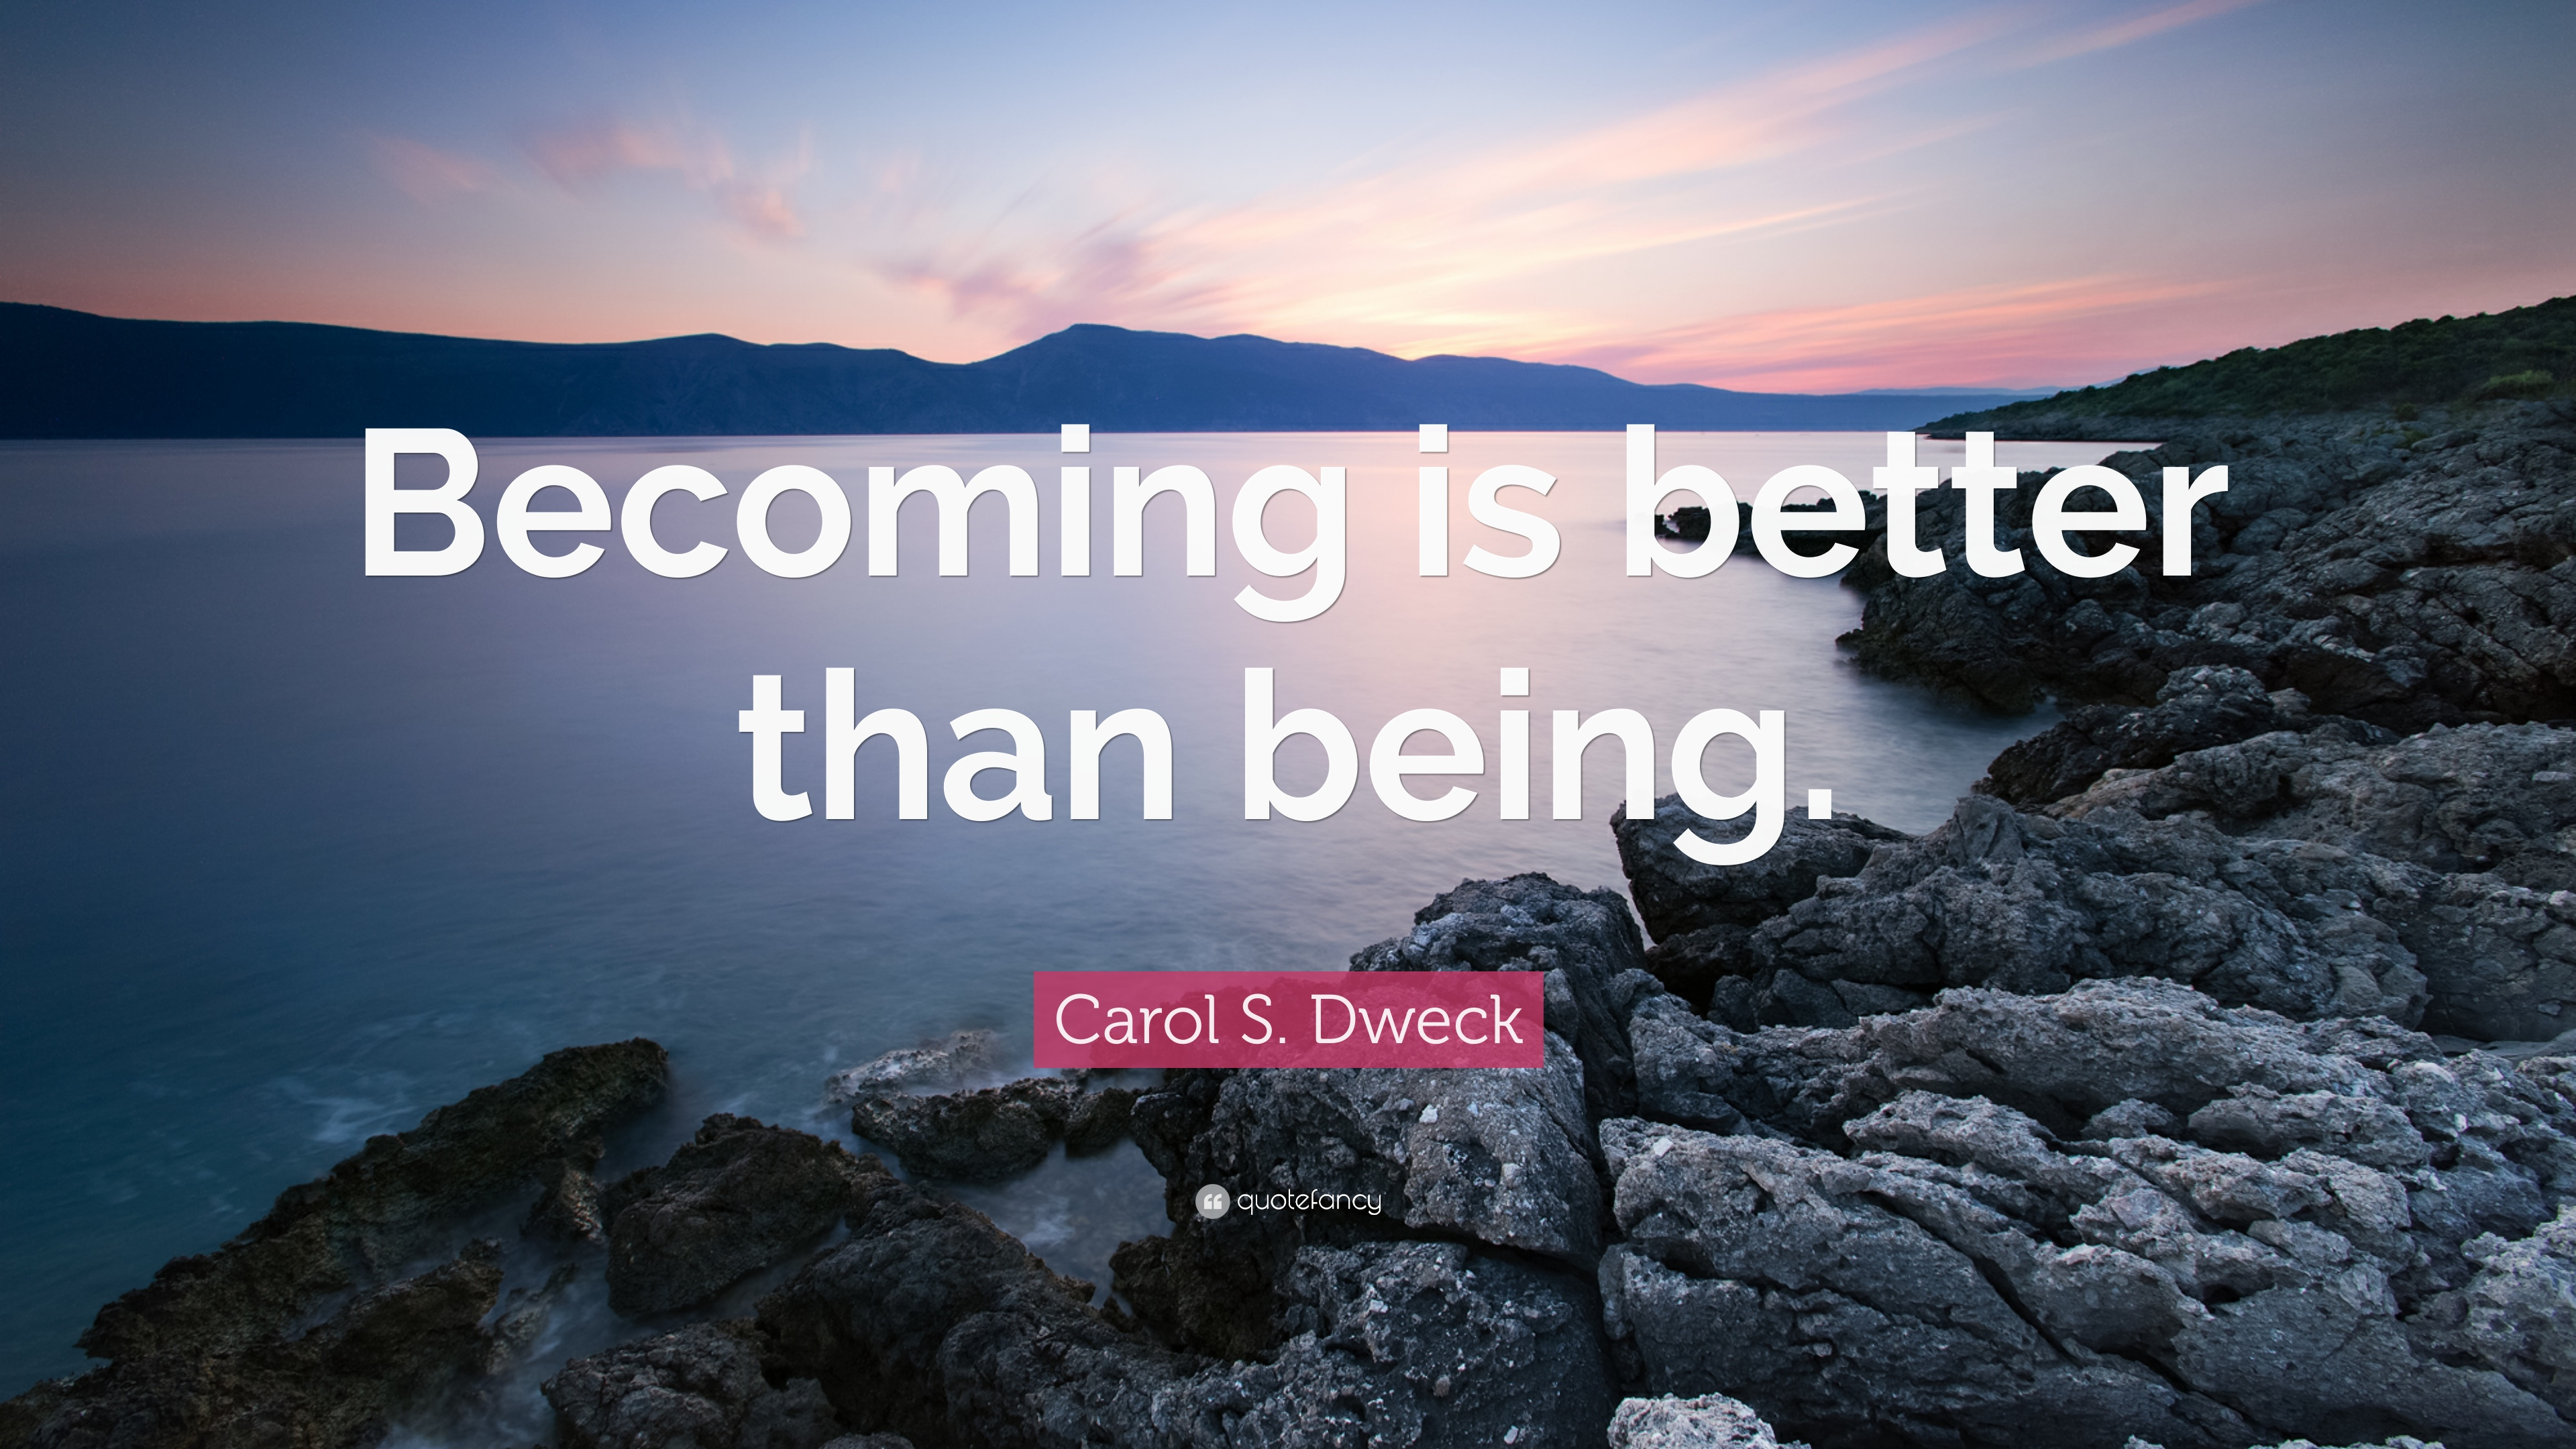 Carol S. Dweck Quotes (33 wallpapers) - Quotefancy